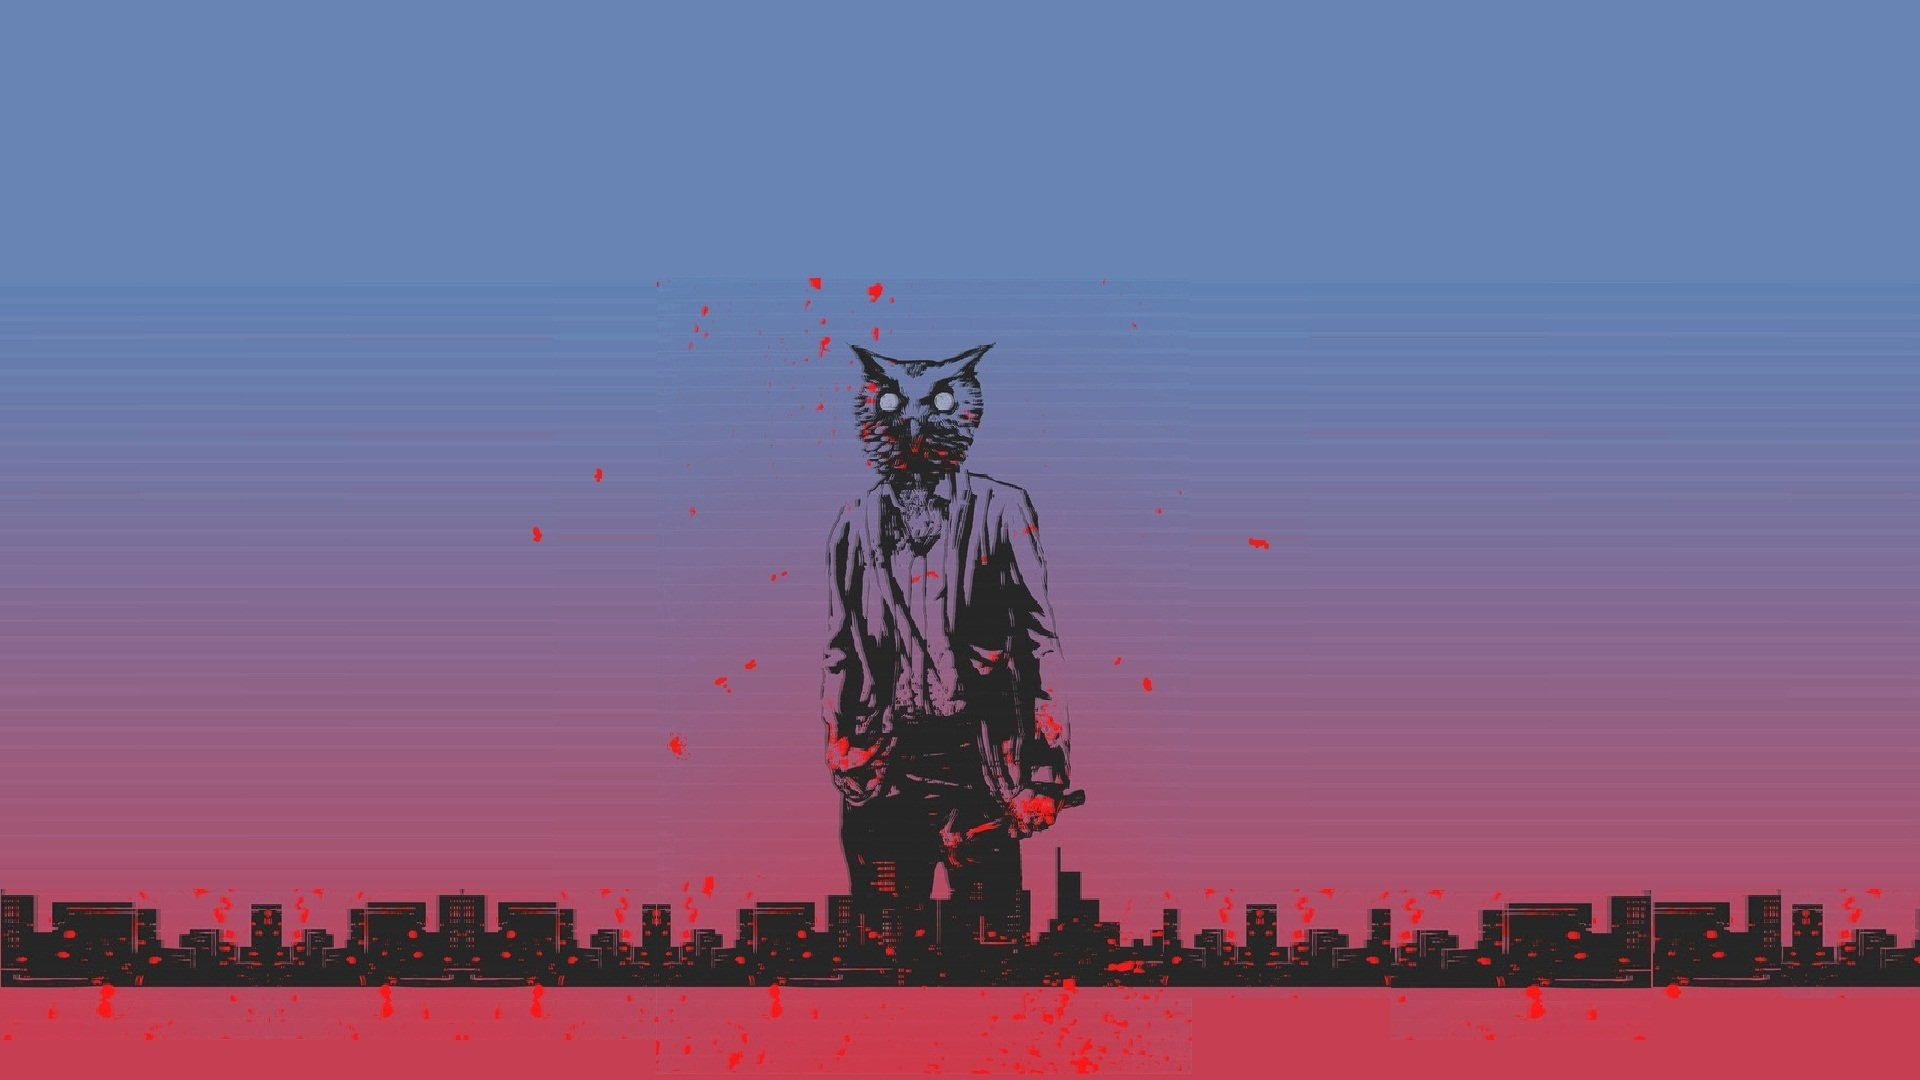 Hotline Miami Wallpapers 1366×768 by Laura Robson #12